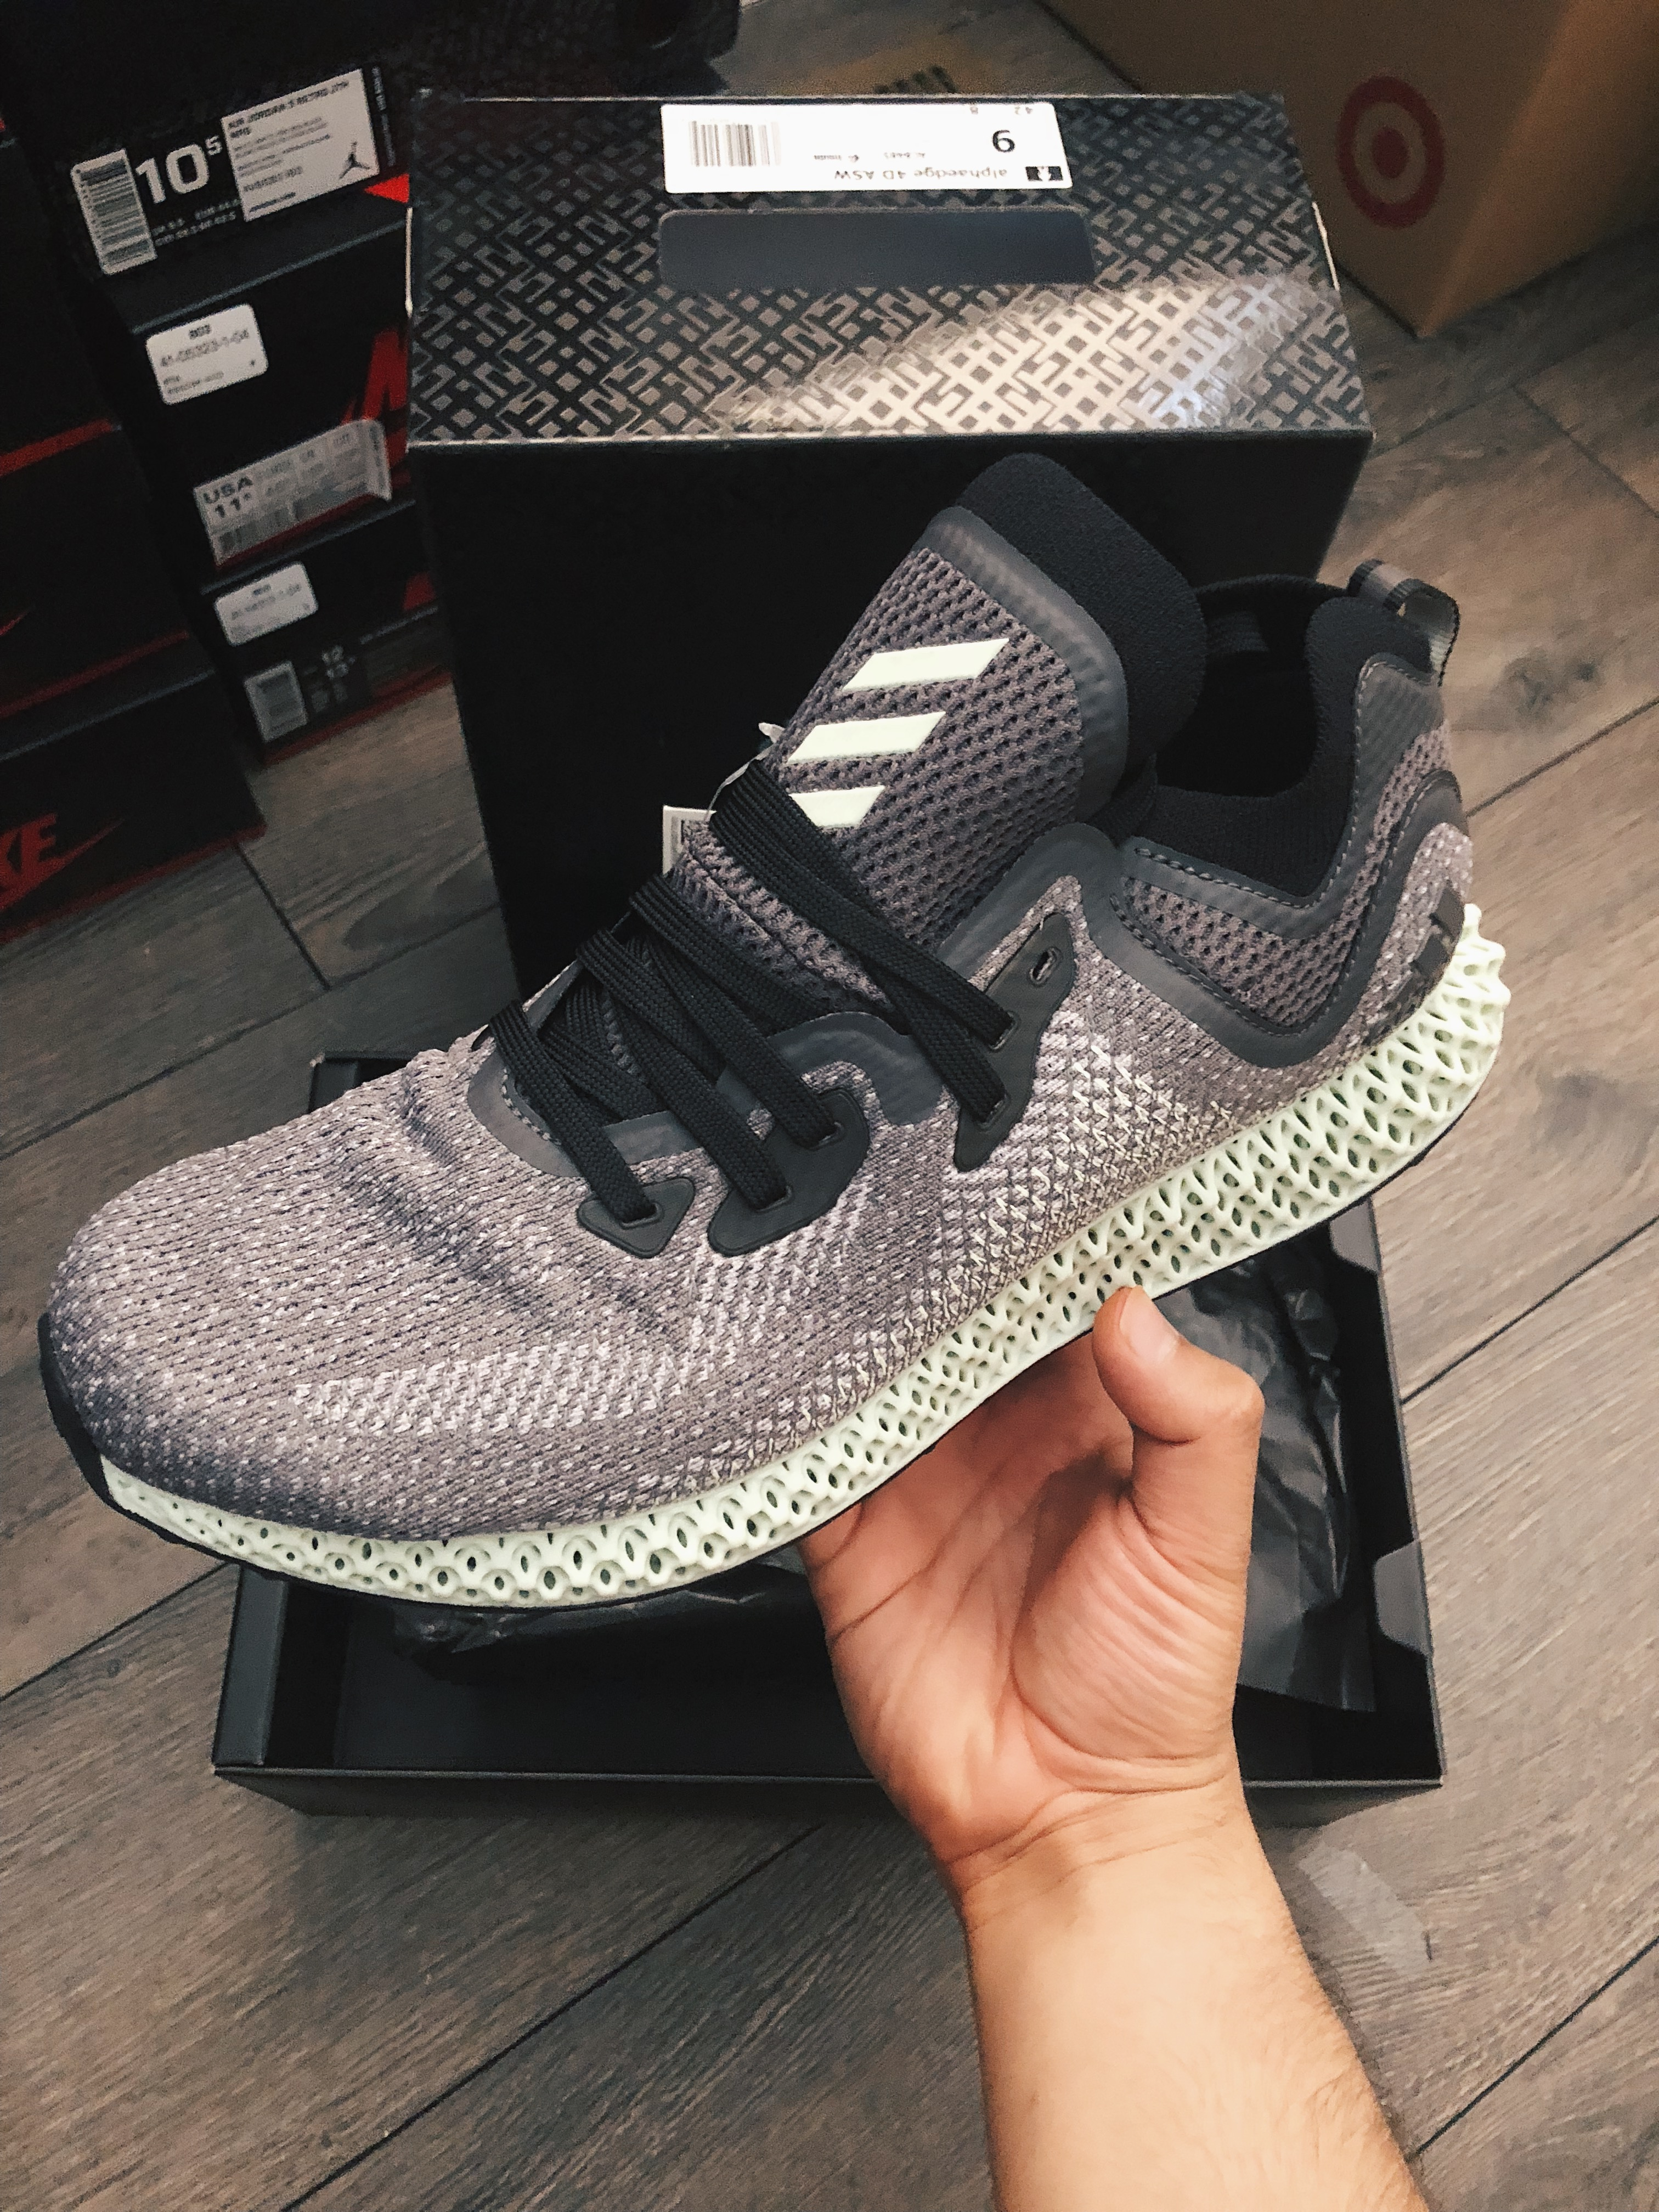 d8a7e85ac Adidas adidas AlphaEdge 4D Ash Green Size 9 - Low-Top Sneakers for ...